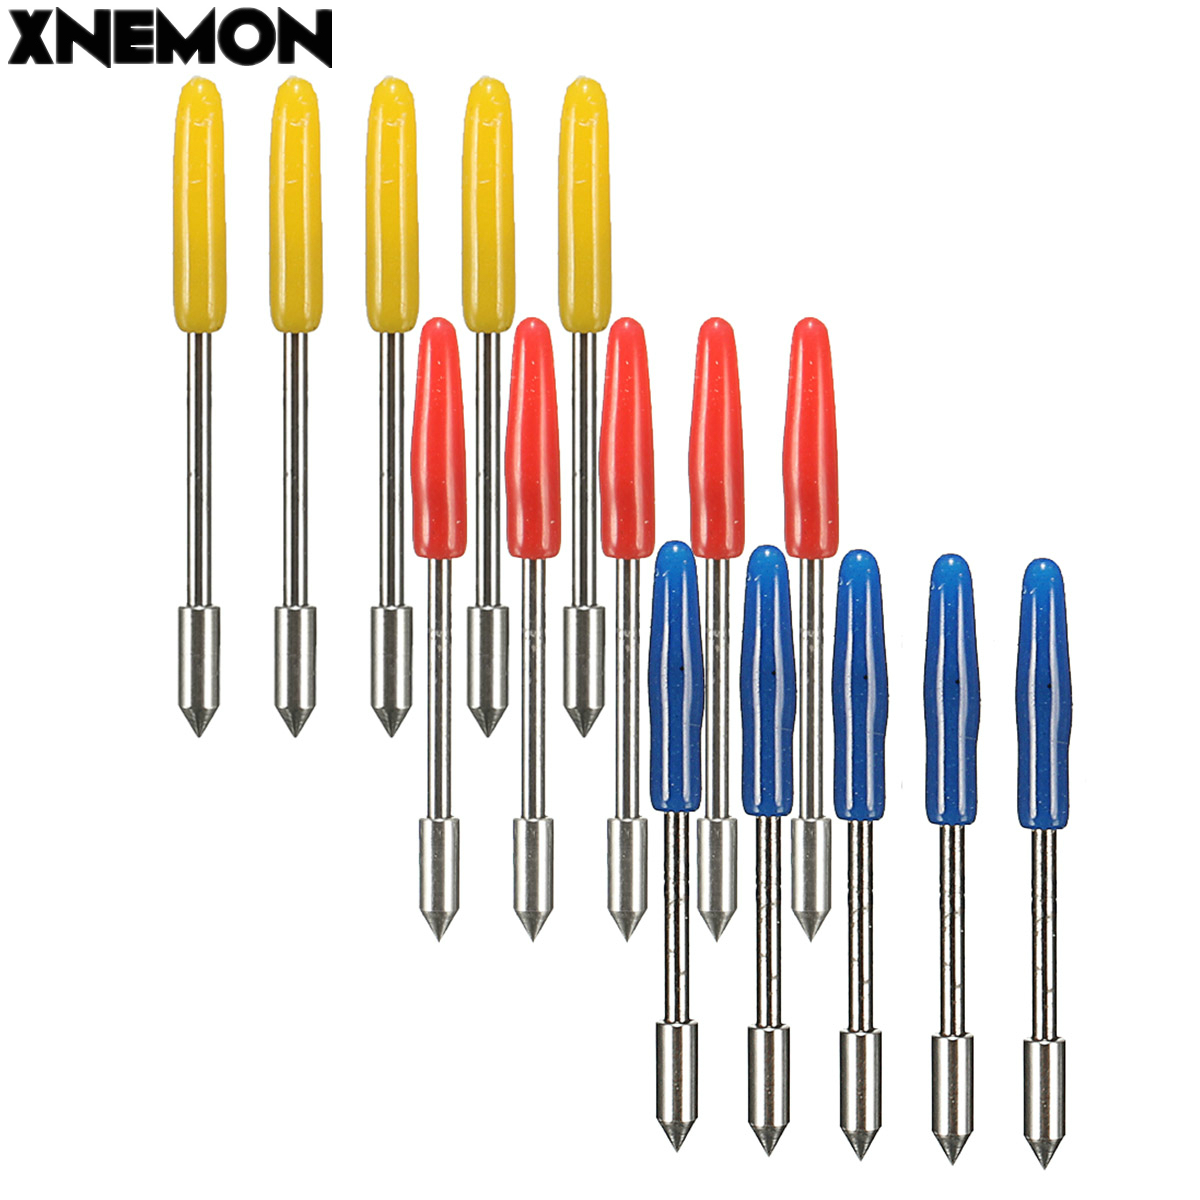 XNEMON 5pcs Engraving Machine Blades Cutter For Graphtec CB09 Vinyl Cutter Plotter Handle diameter: 1mm Overall Length:20mm(China)